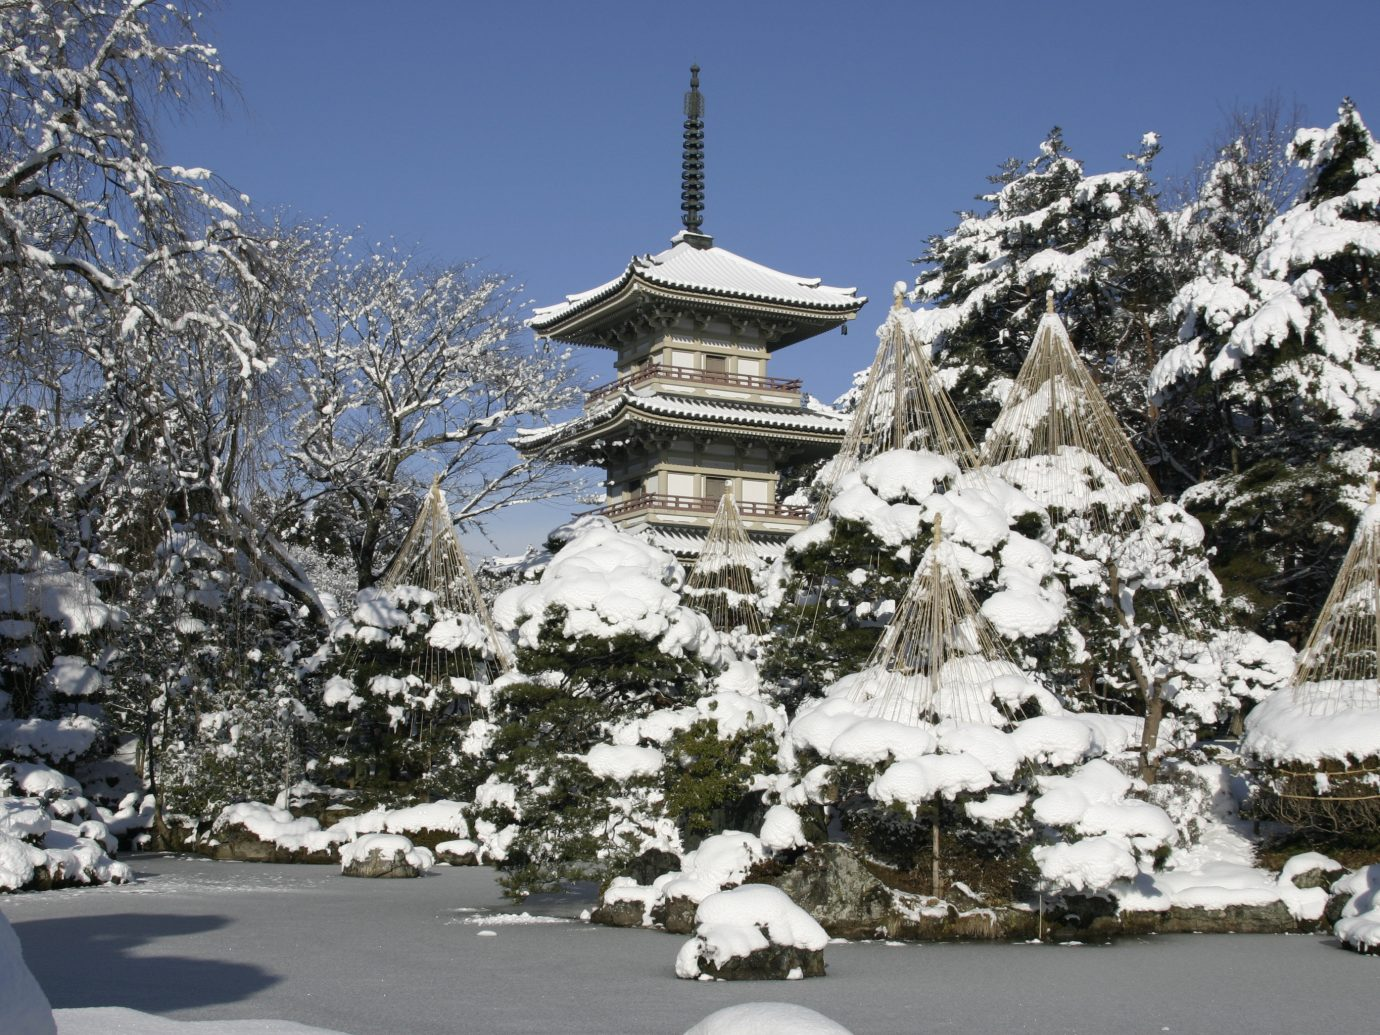 Arts + Culture Festivals + Events Travel Tips outdoor tree sky snow Winter plant freezing tourist attraction place of worship spring cherry blossom branch mountain surrounded